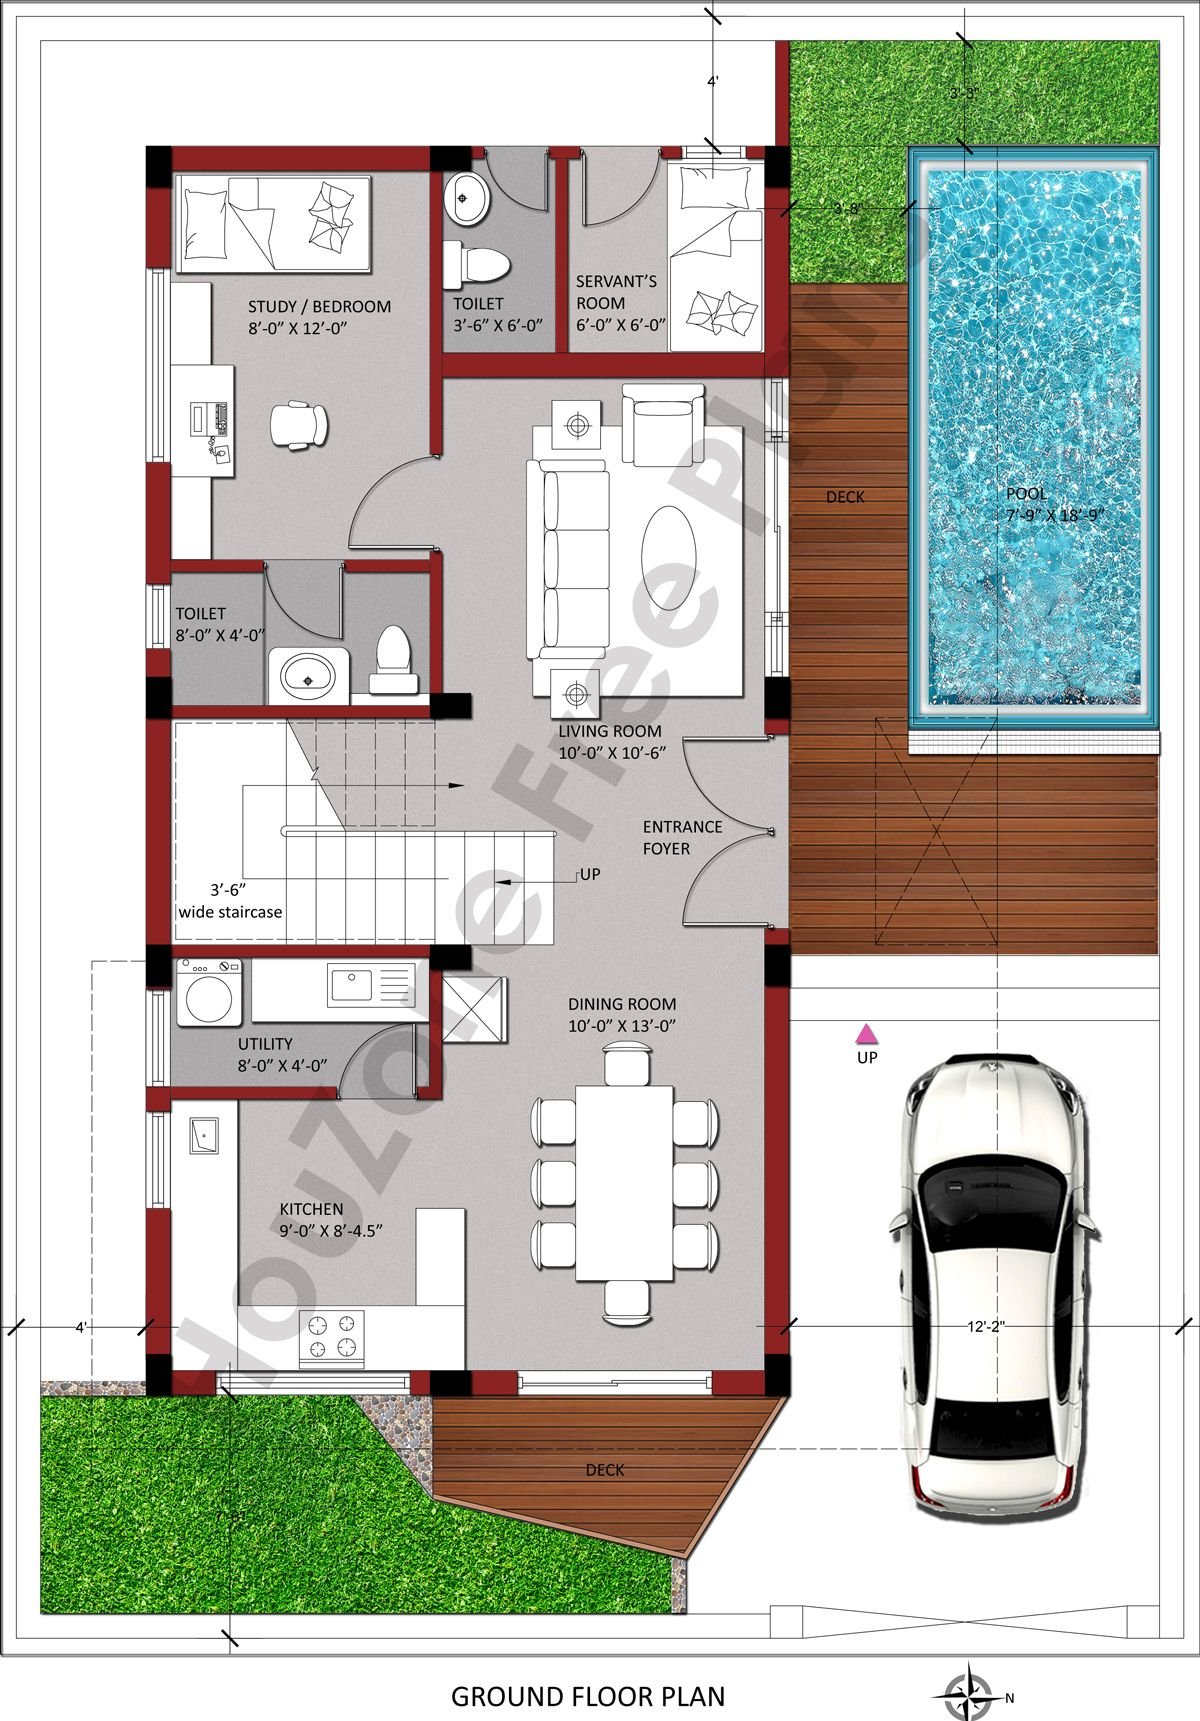 3 Bedroom Duplex House With Swimming Pool In 200 Sq Yards Plot Houzone Pool House Plans Duplex House Plans Luxury House Plans